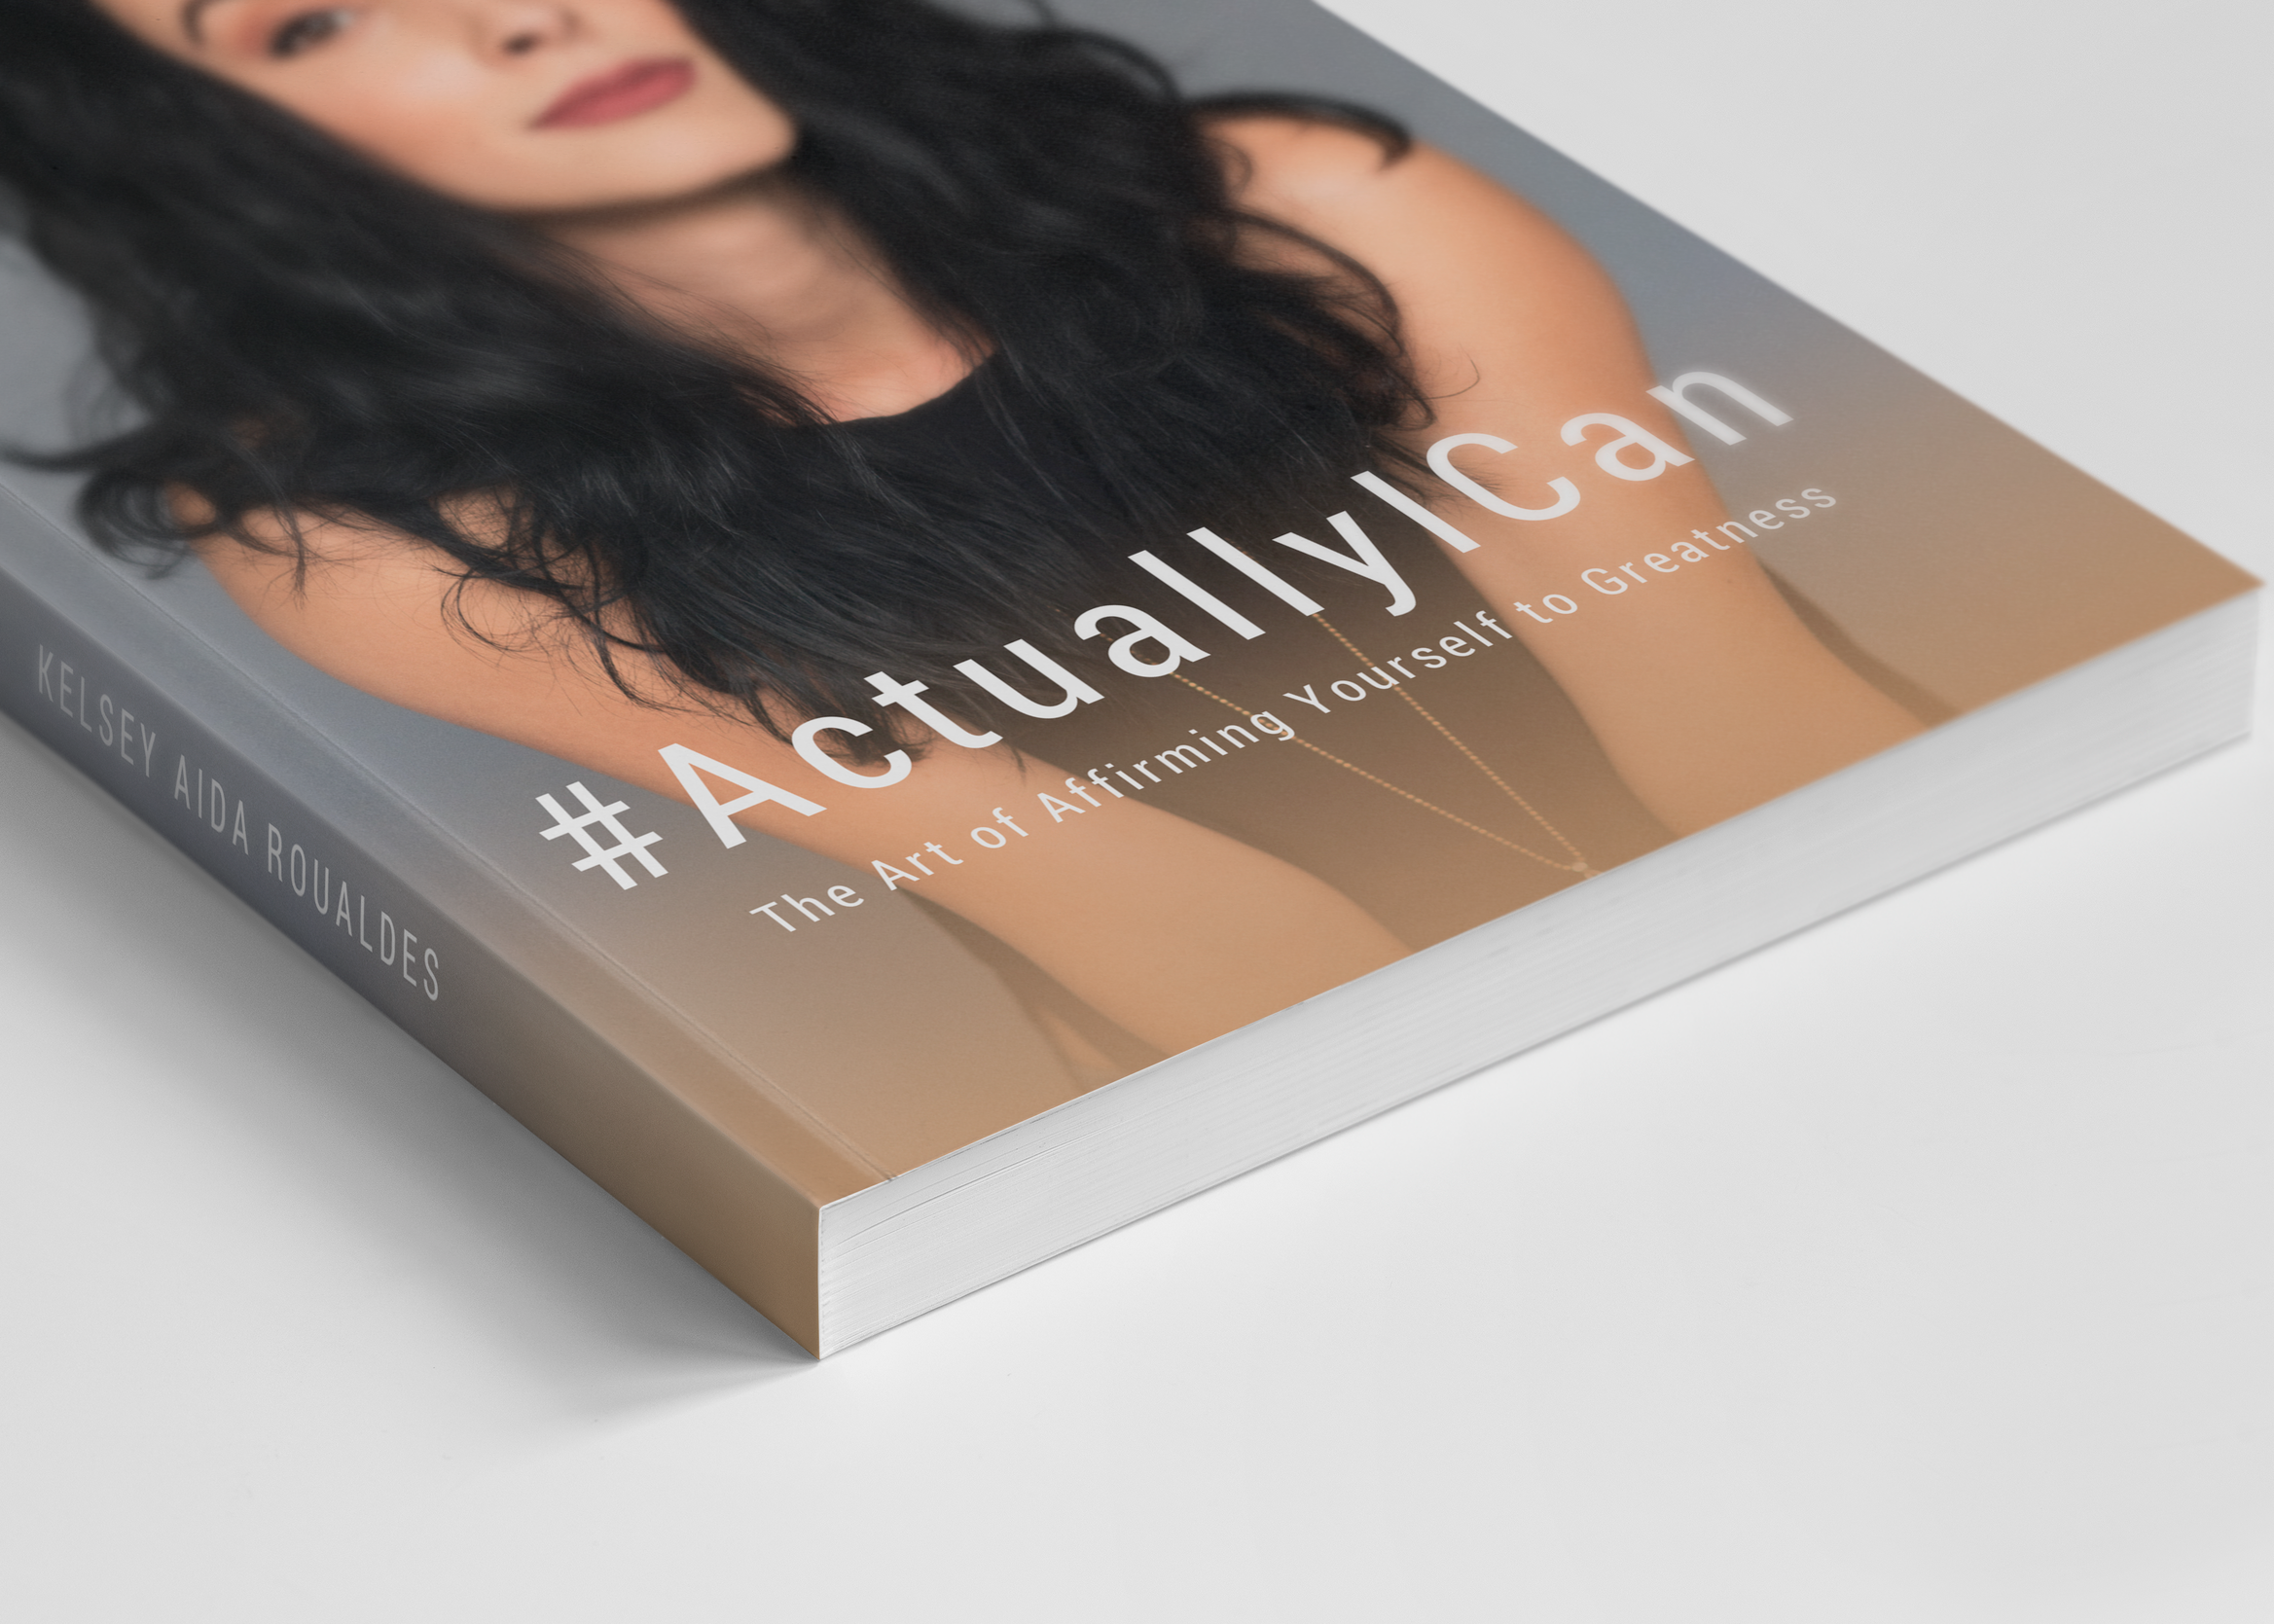 #ActuallyICan Softcover